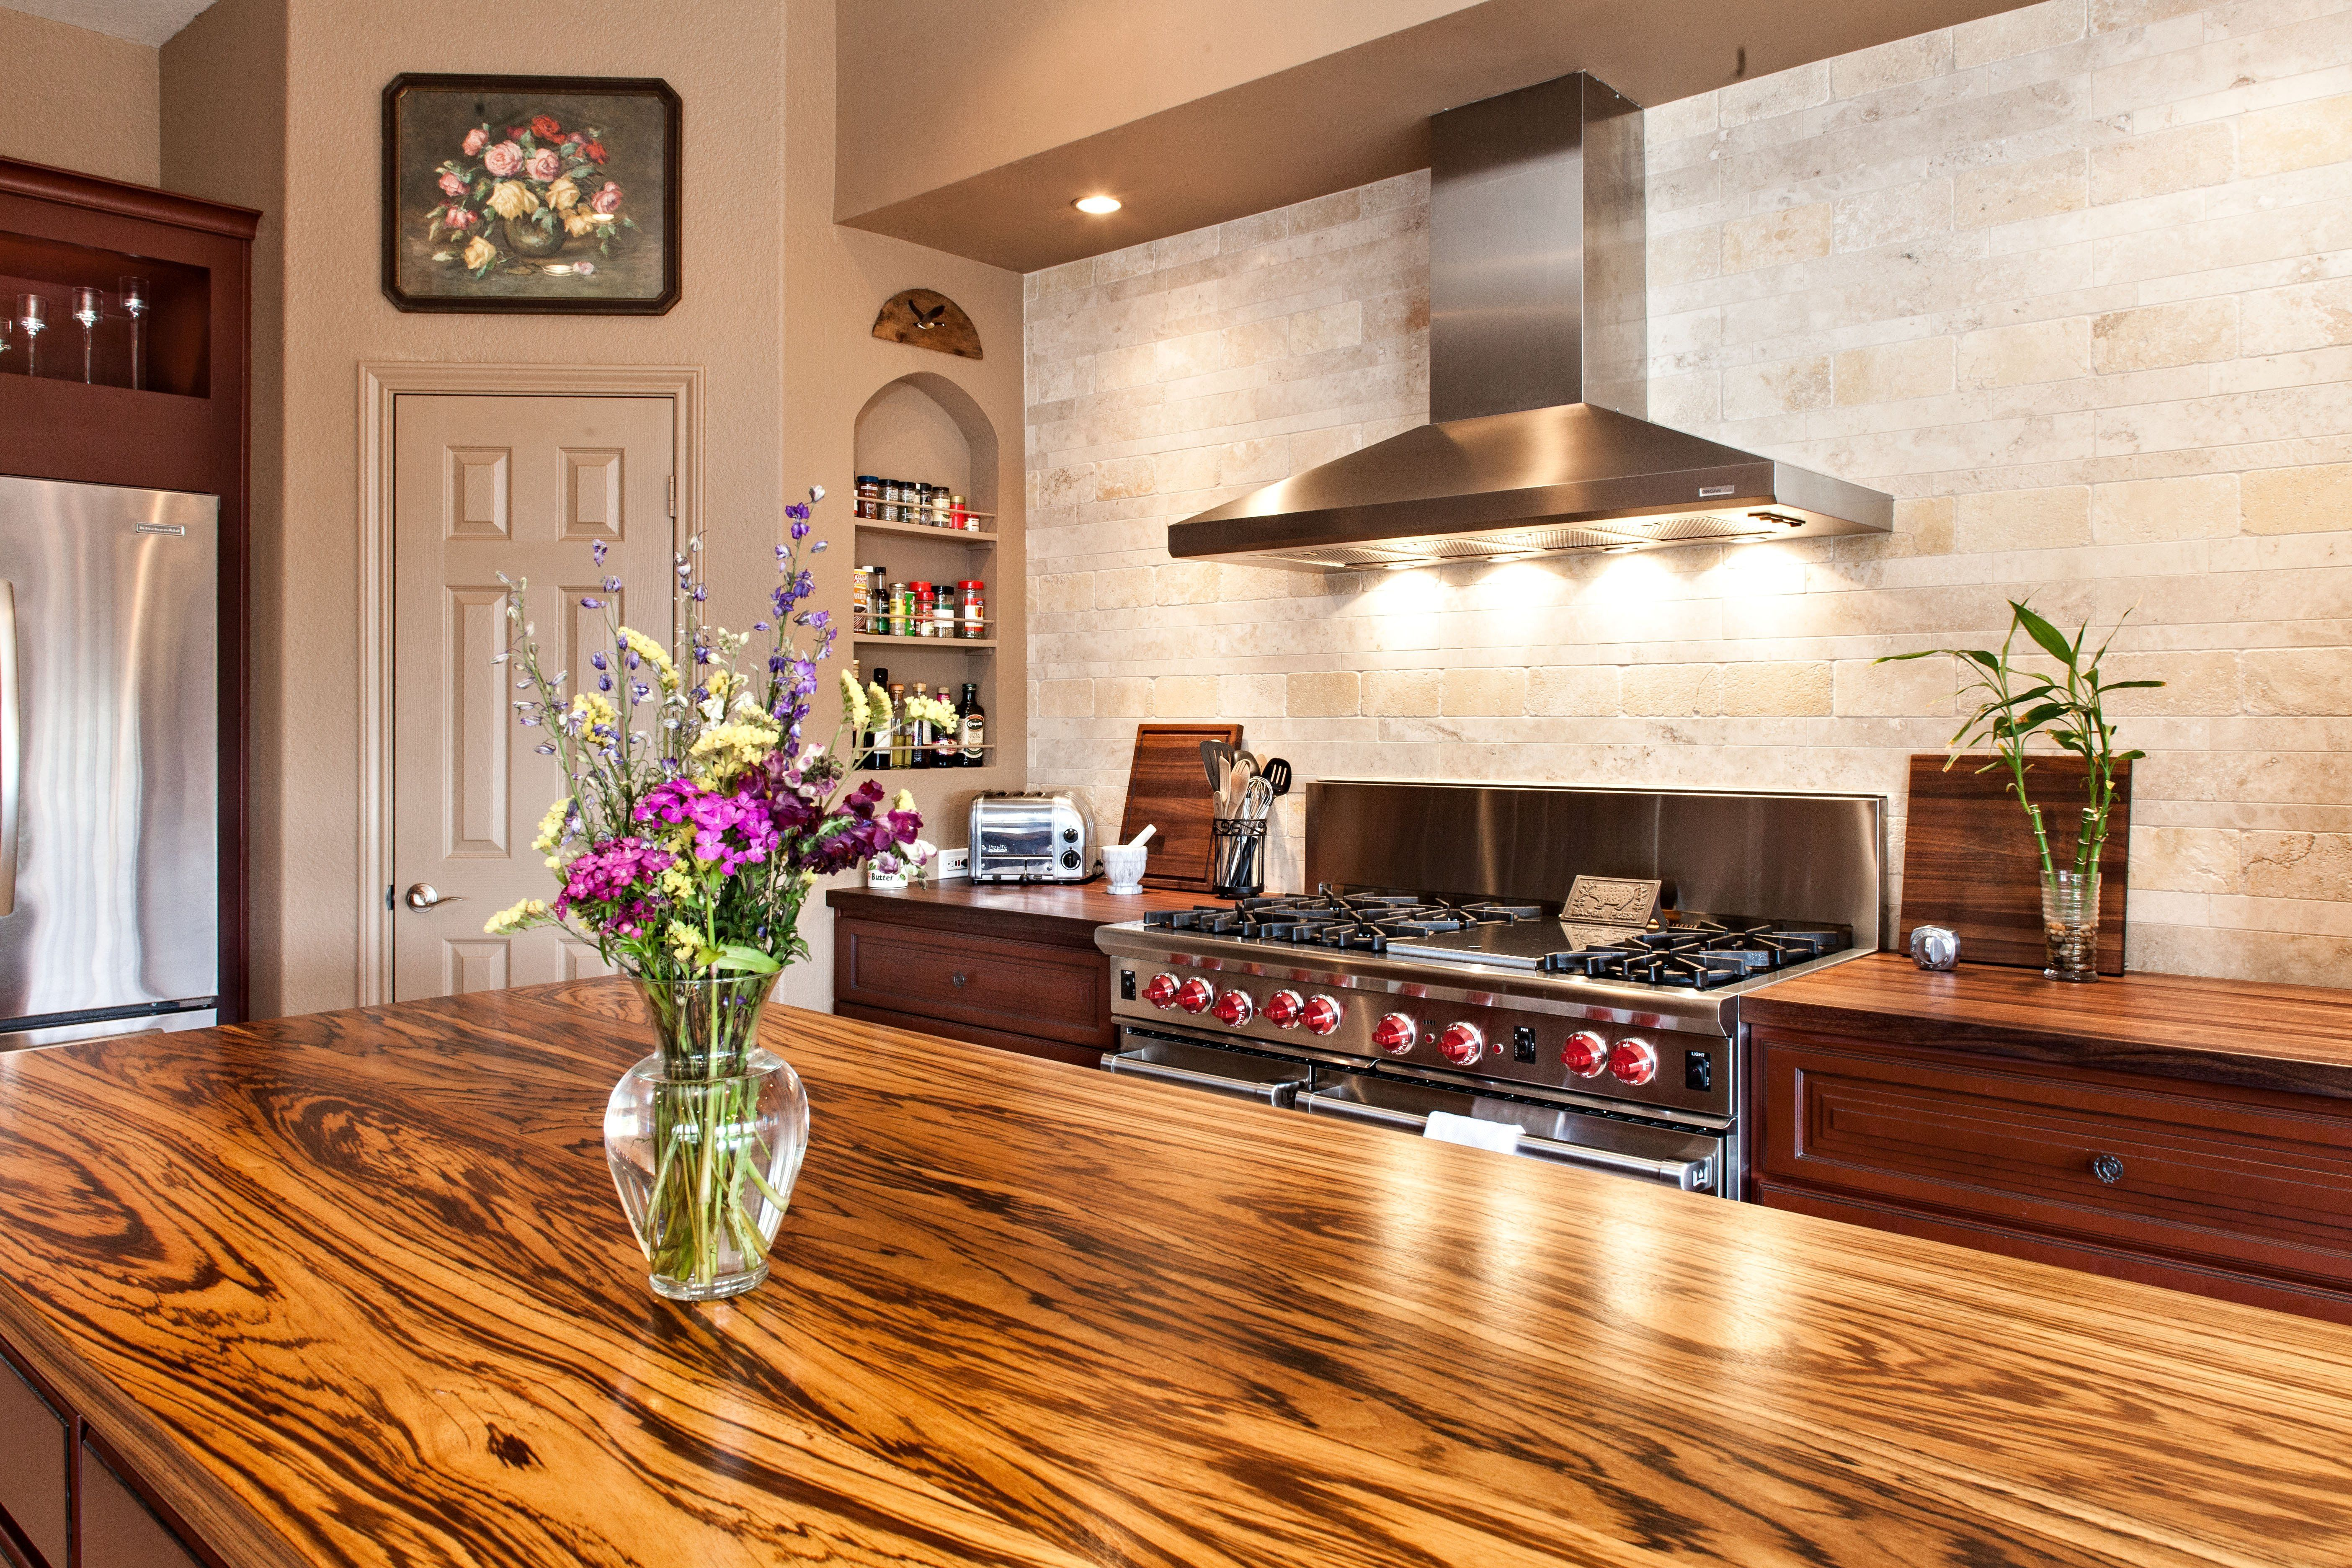 Photo Gallery Of Zebrawood Wood Countertops, Butcher Block Countertops,  Wood Bar Tops, Wood Table Tops, And Custom Wood Tables Are All Made By  DeVos Custom ...